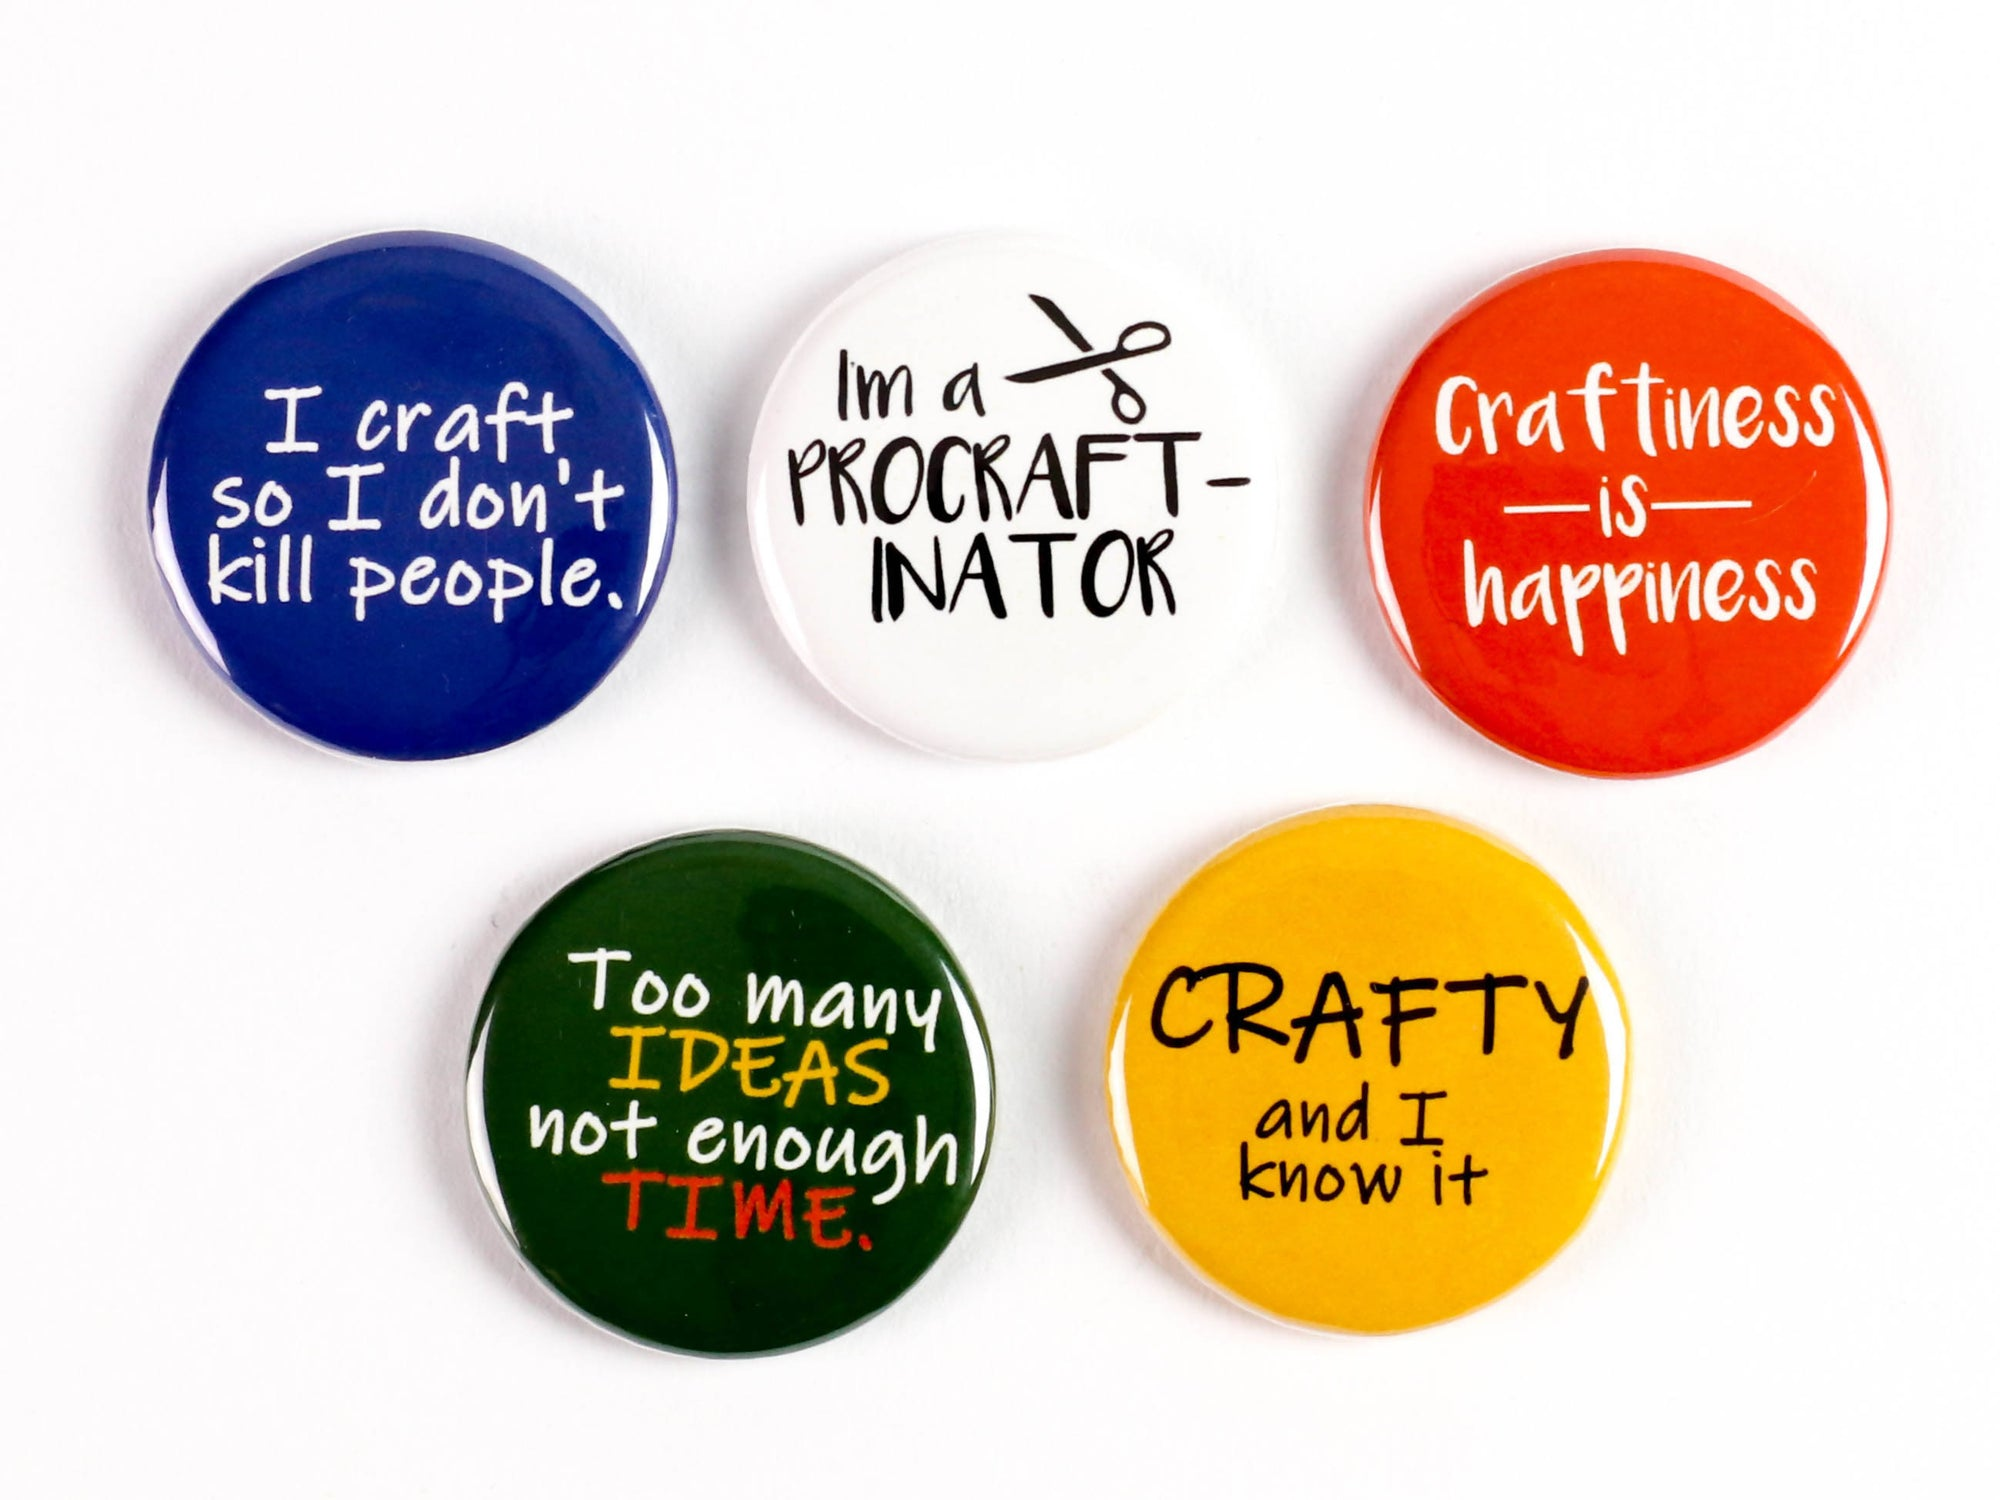 Crafty and I know it! - Strong Ceramic Magnets Or Pinback Buttons for Craft lovers! I'm a procraftinator!